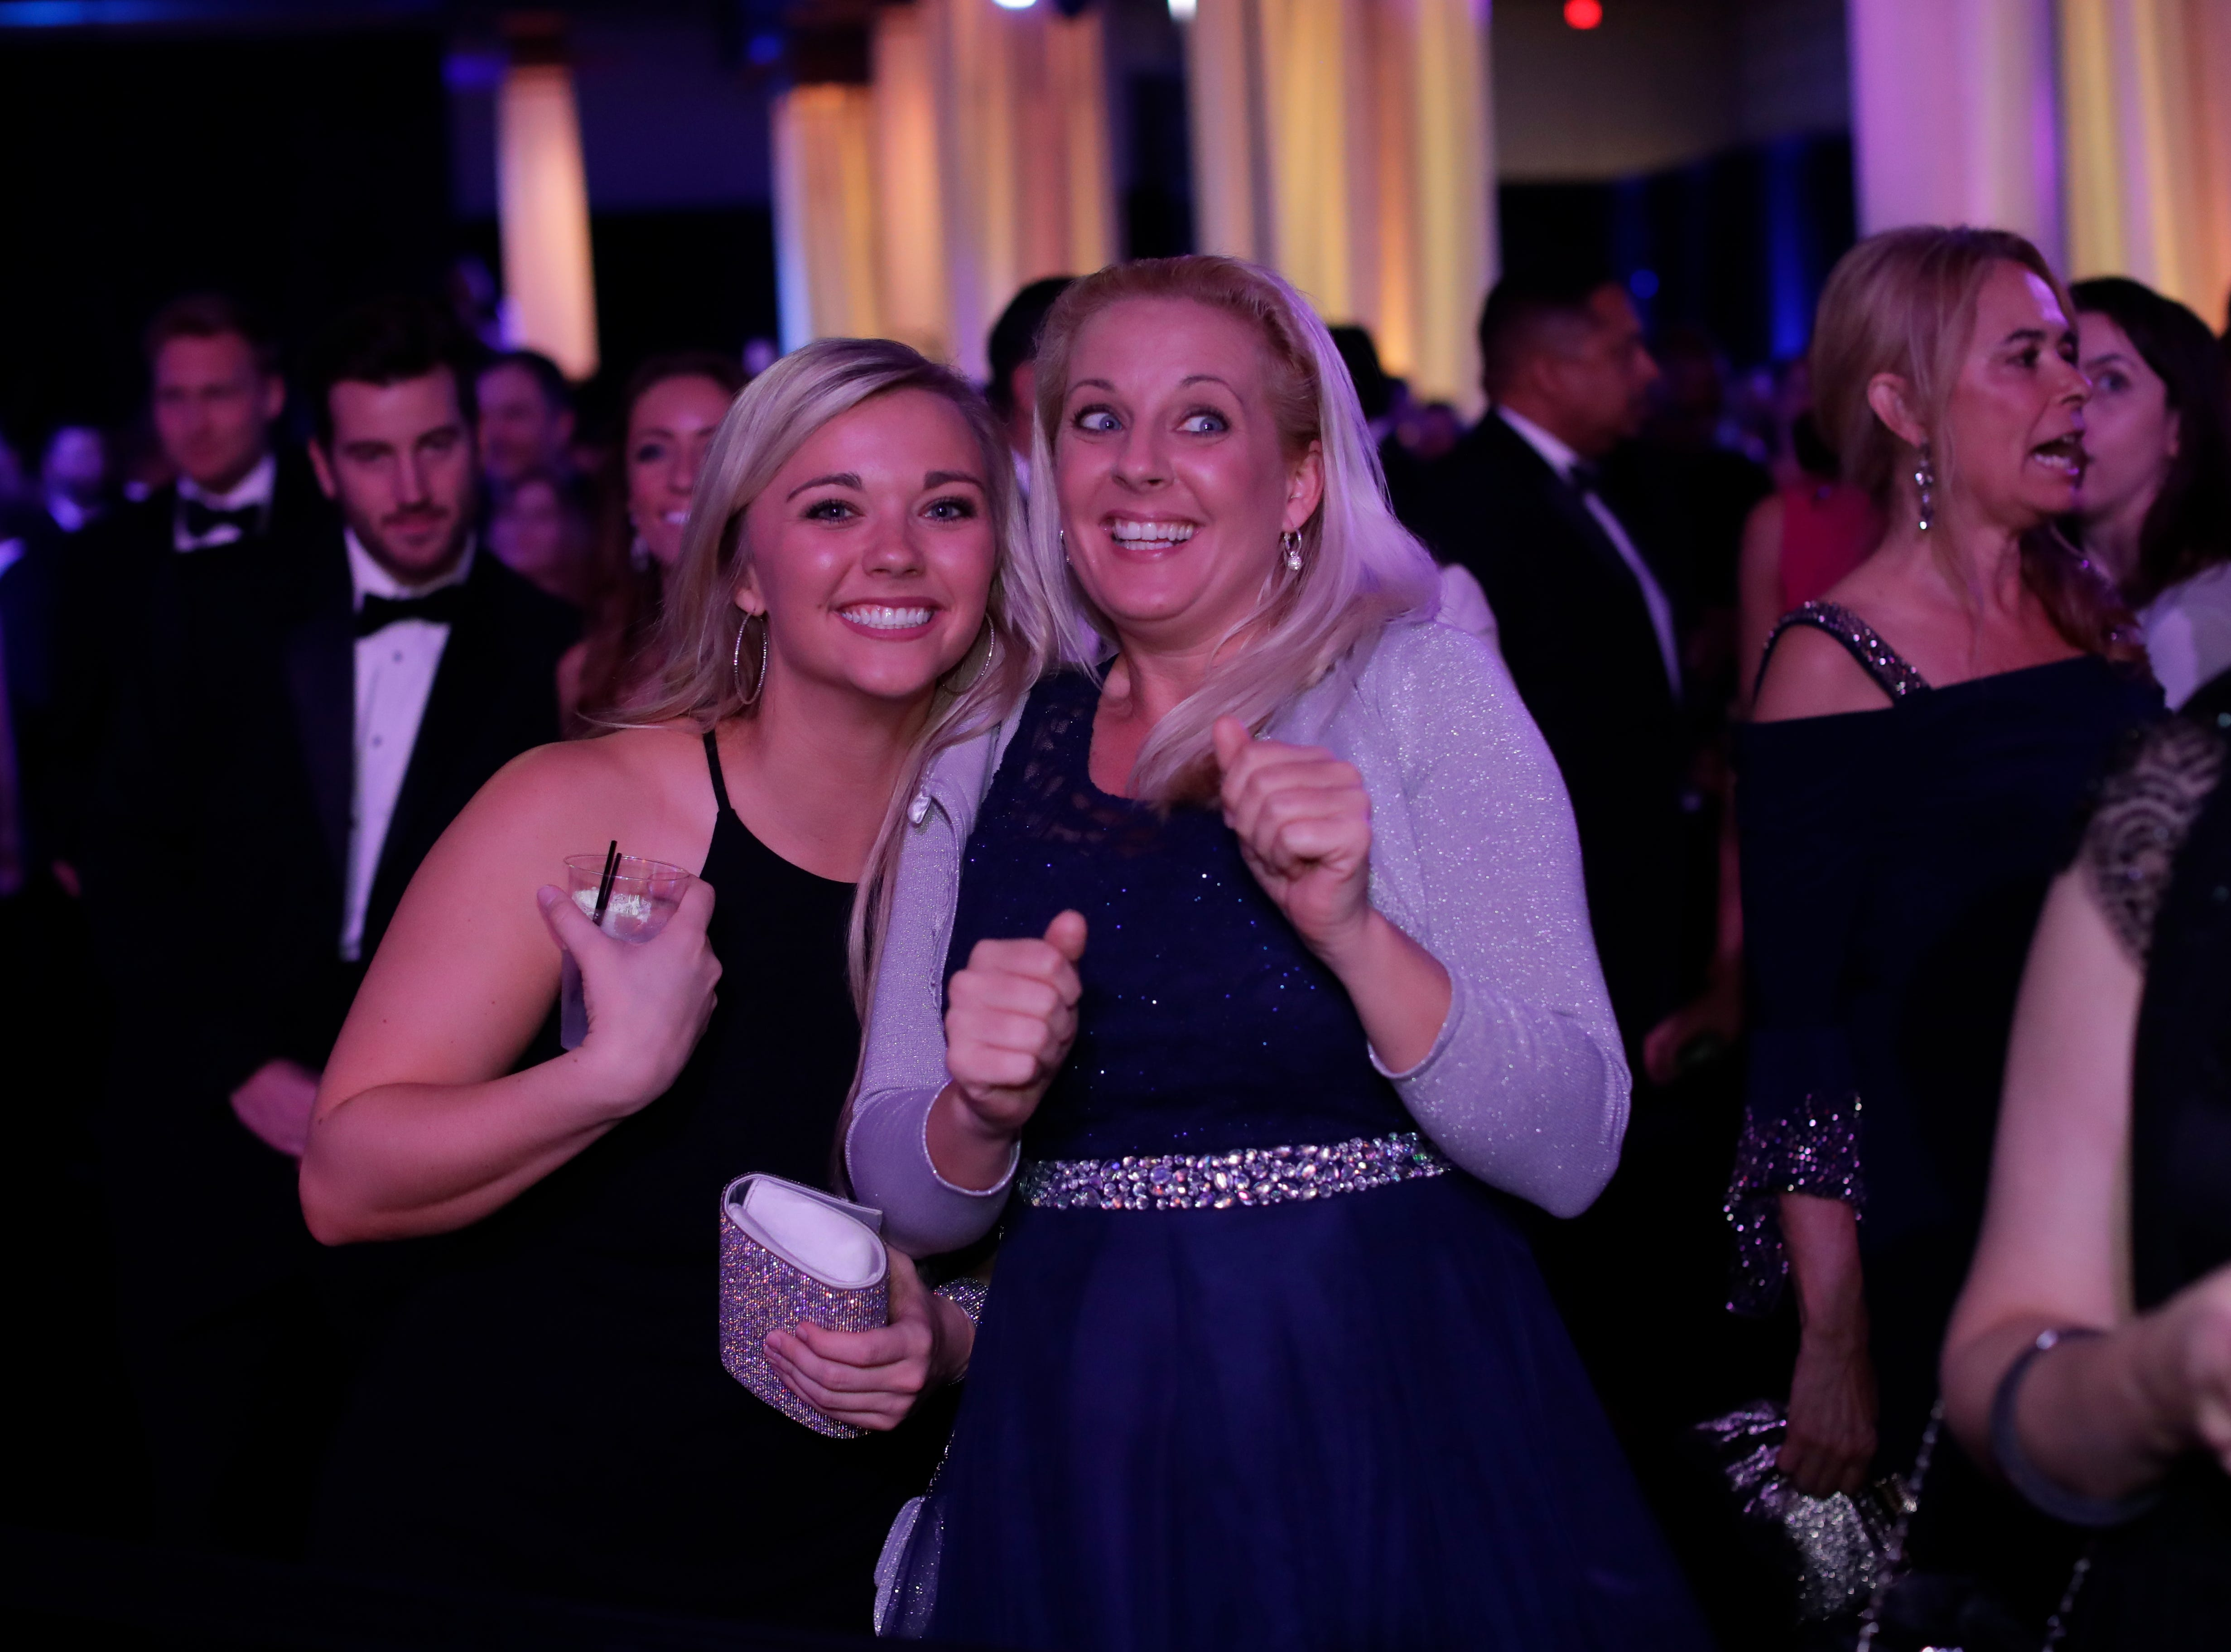 Hundreds of guests from all over Florida attend Florida's 46th Governor's Inaugural Ball at the Tucker Civic Center, Tuesday, Jan. 8, 2019. Guests dance the night away as live music is performed.